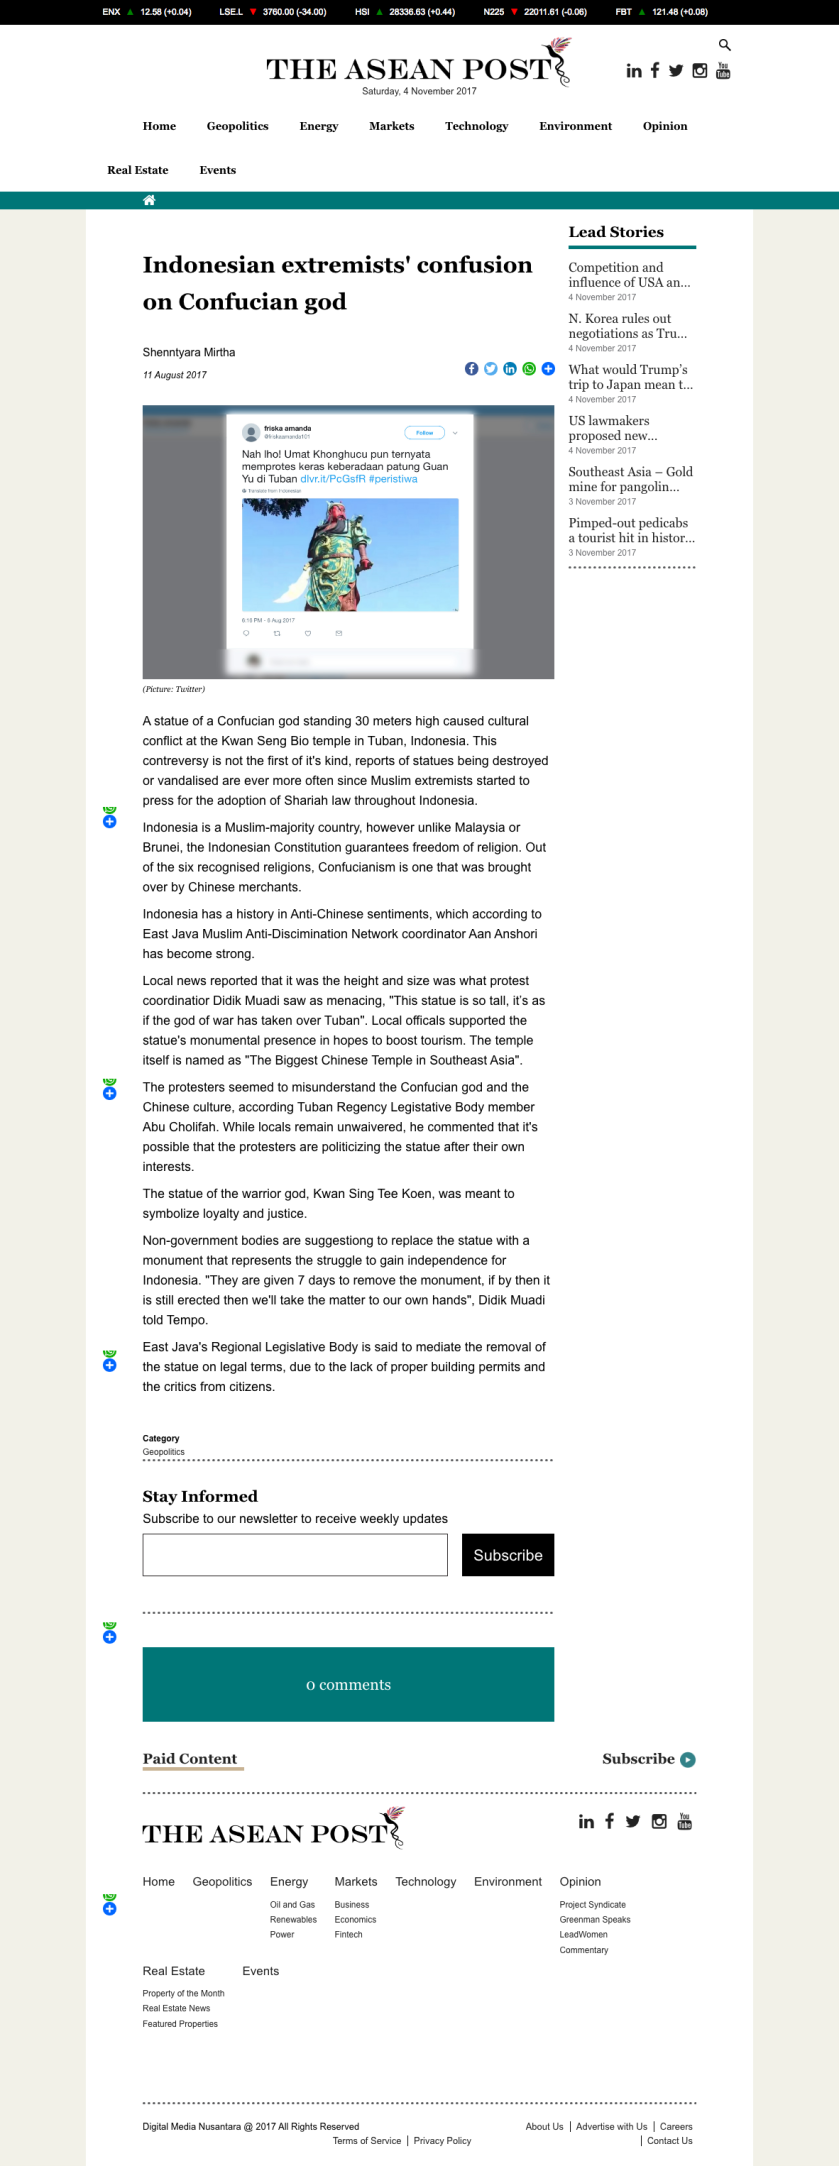 screencapture-theaseanpost-article-indonesian-extremists-confusion-confucian-god-1509804594035